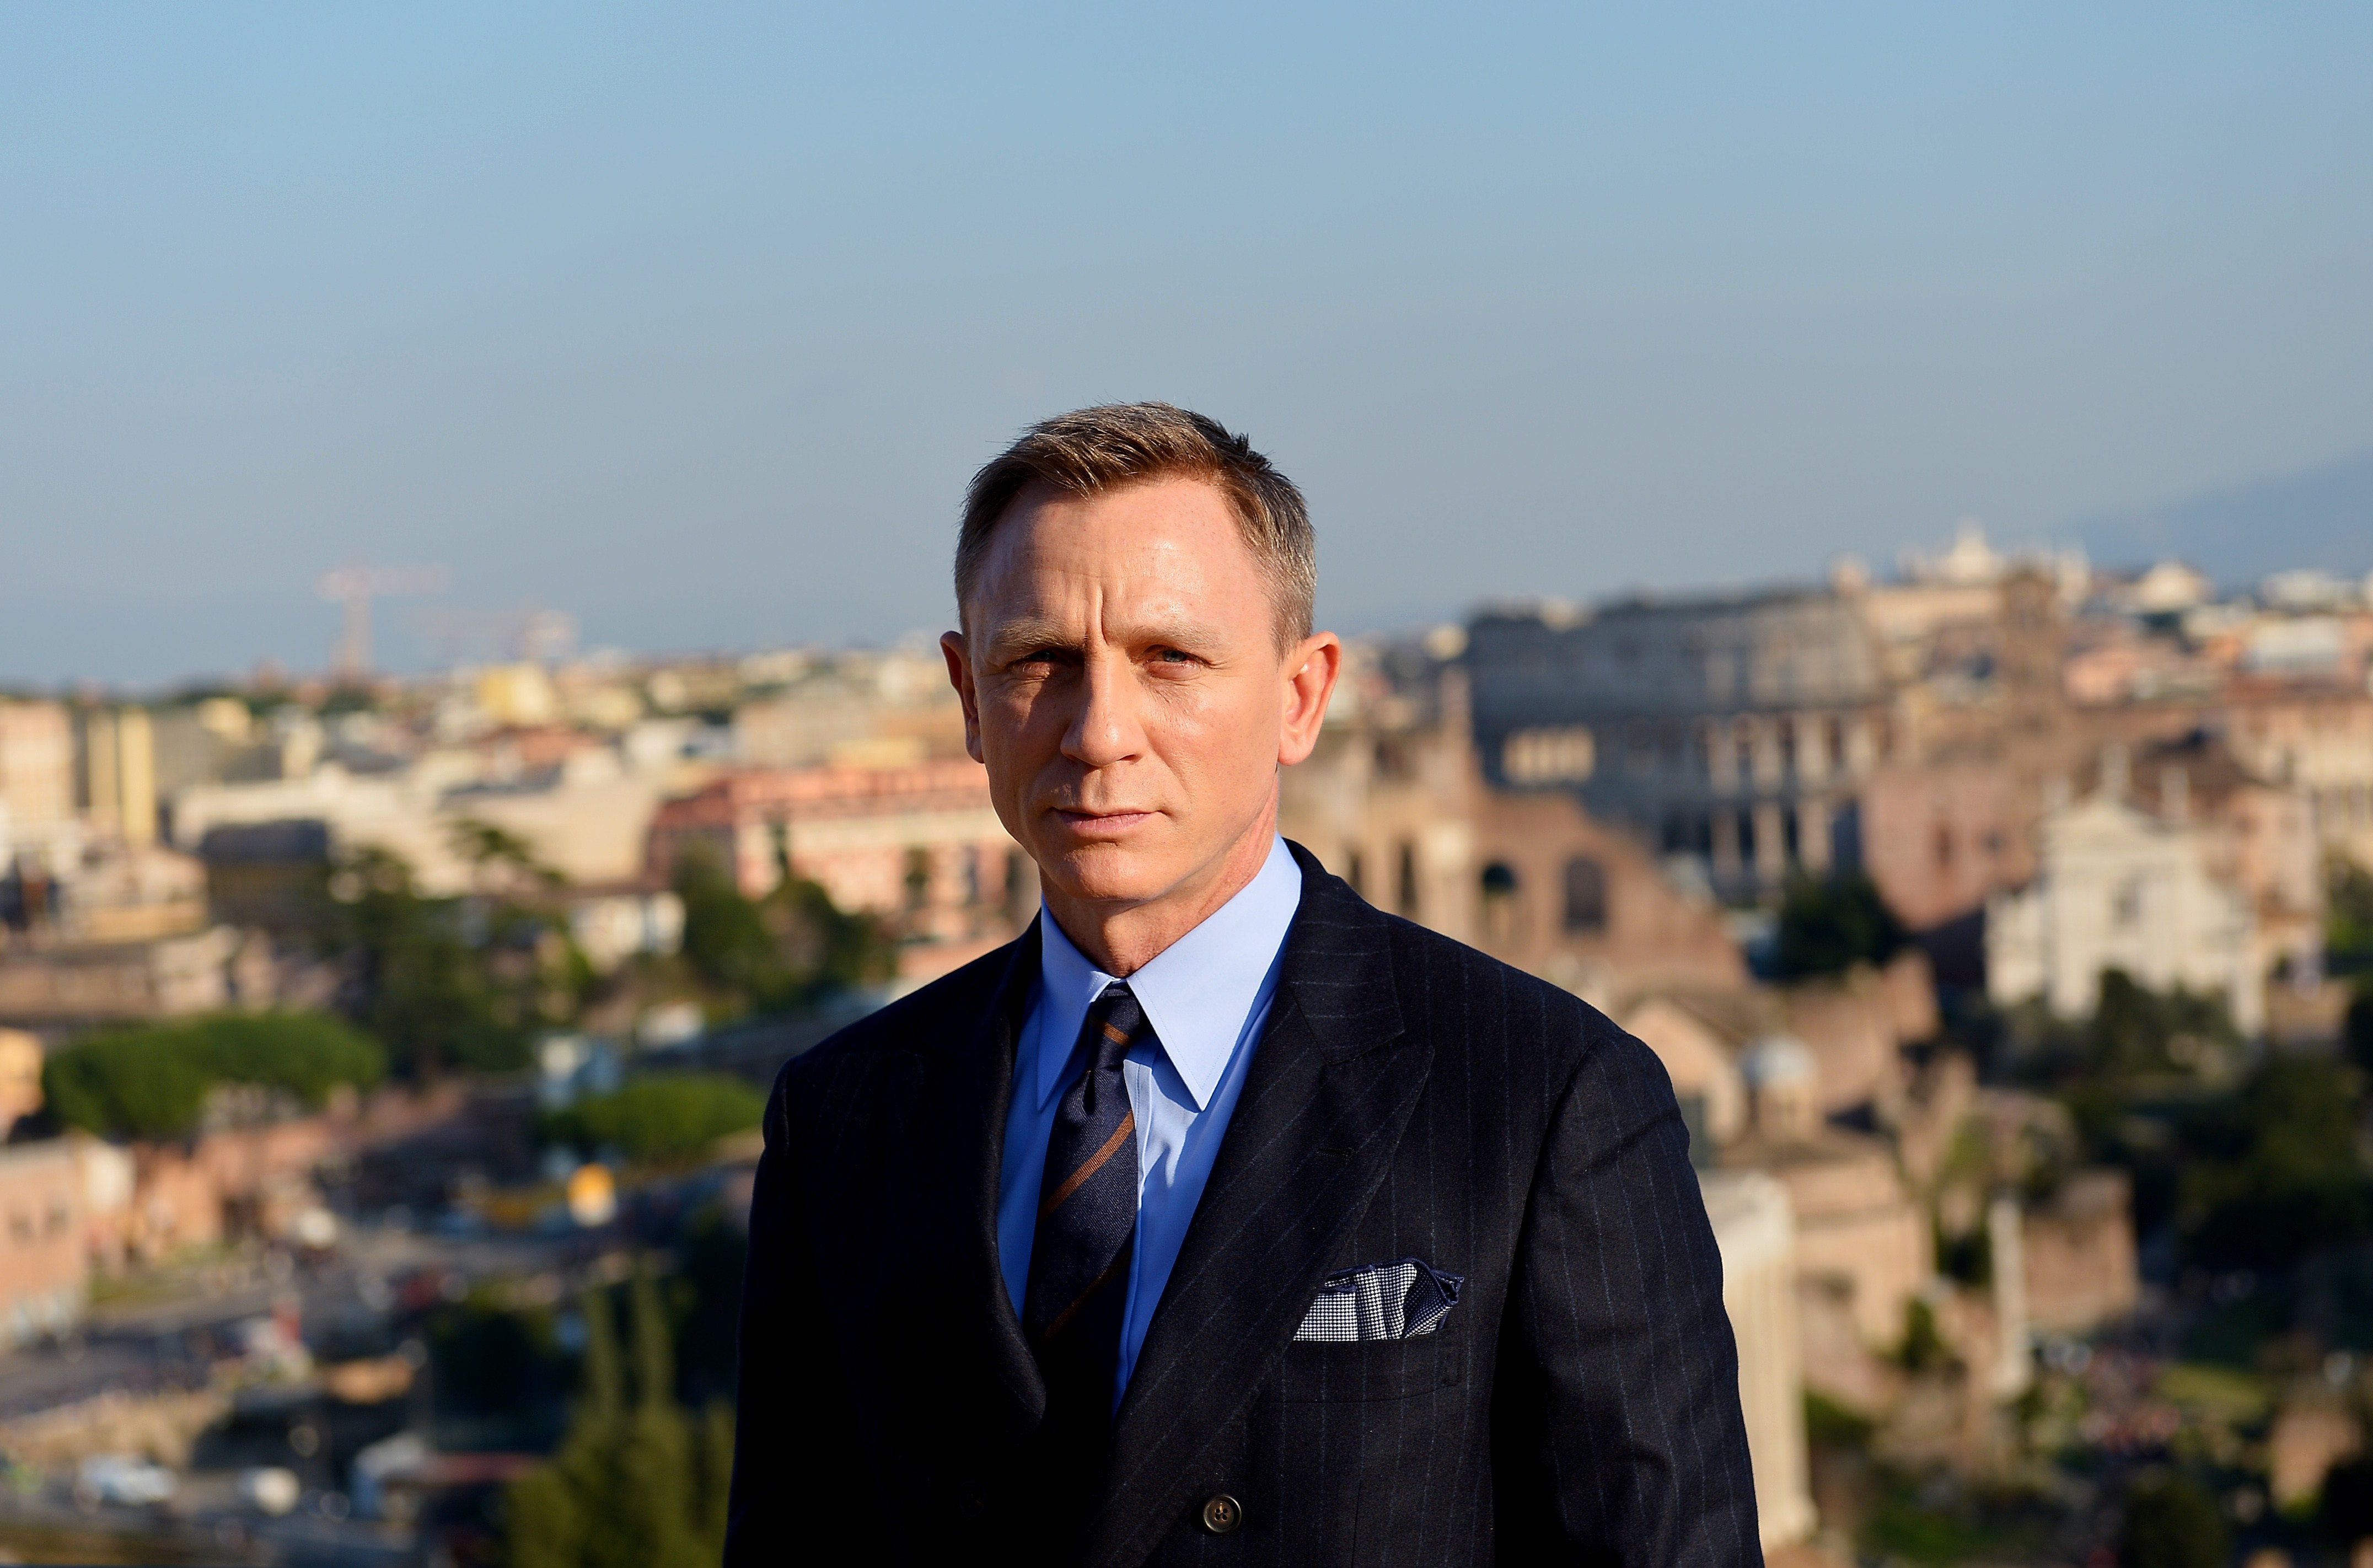 Daniel Craig poses during a photocall to promote the 24th James Bond film 'Spectre' at Rome's city hall on Feb. 18, 2015.